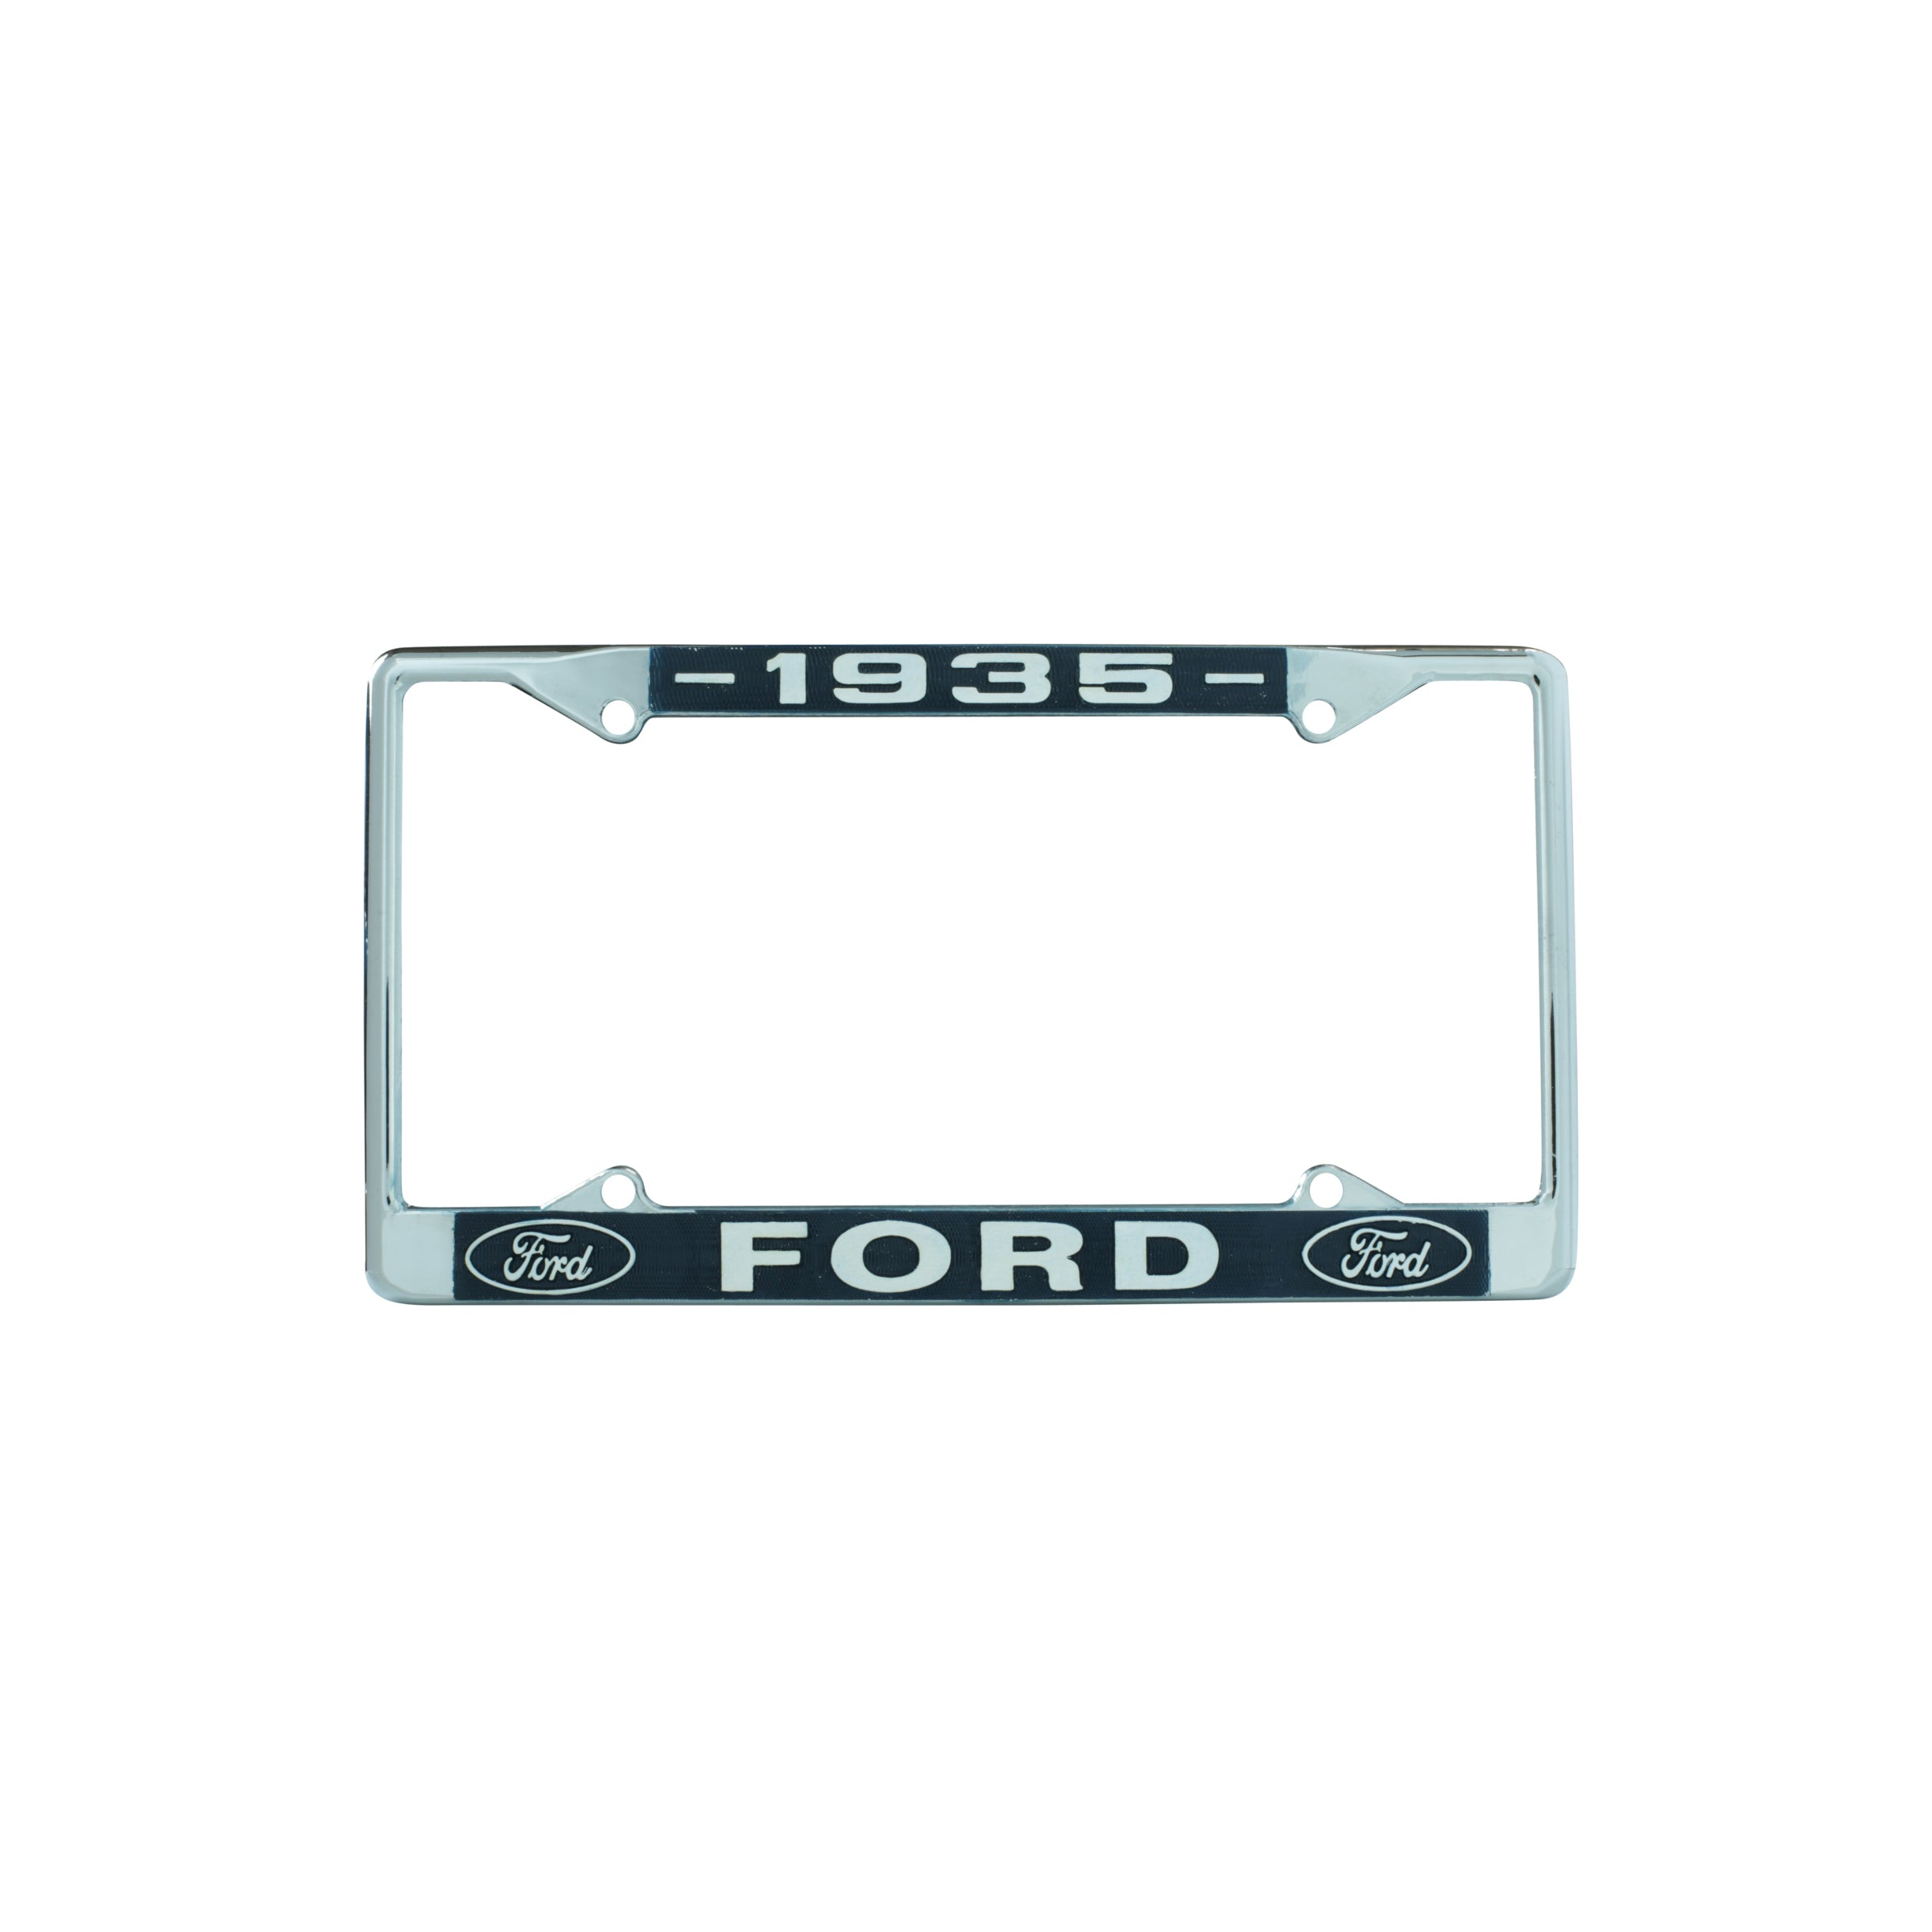 License Plate Frame • 1935 Ford